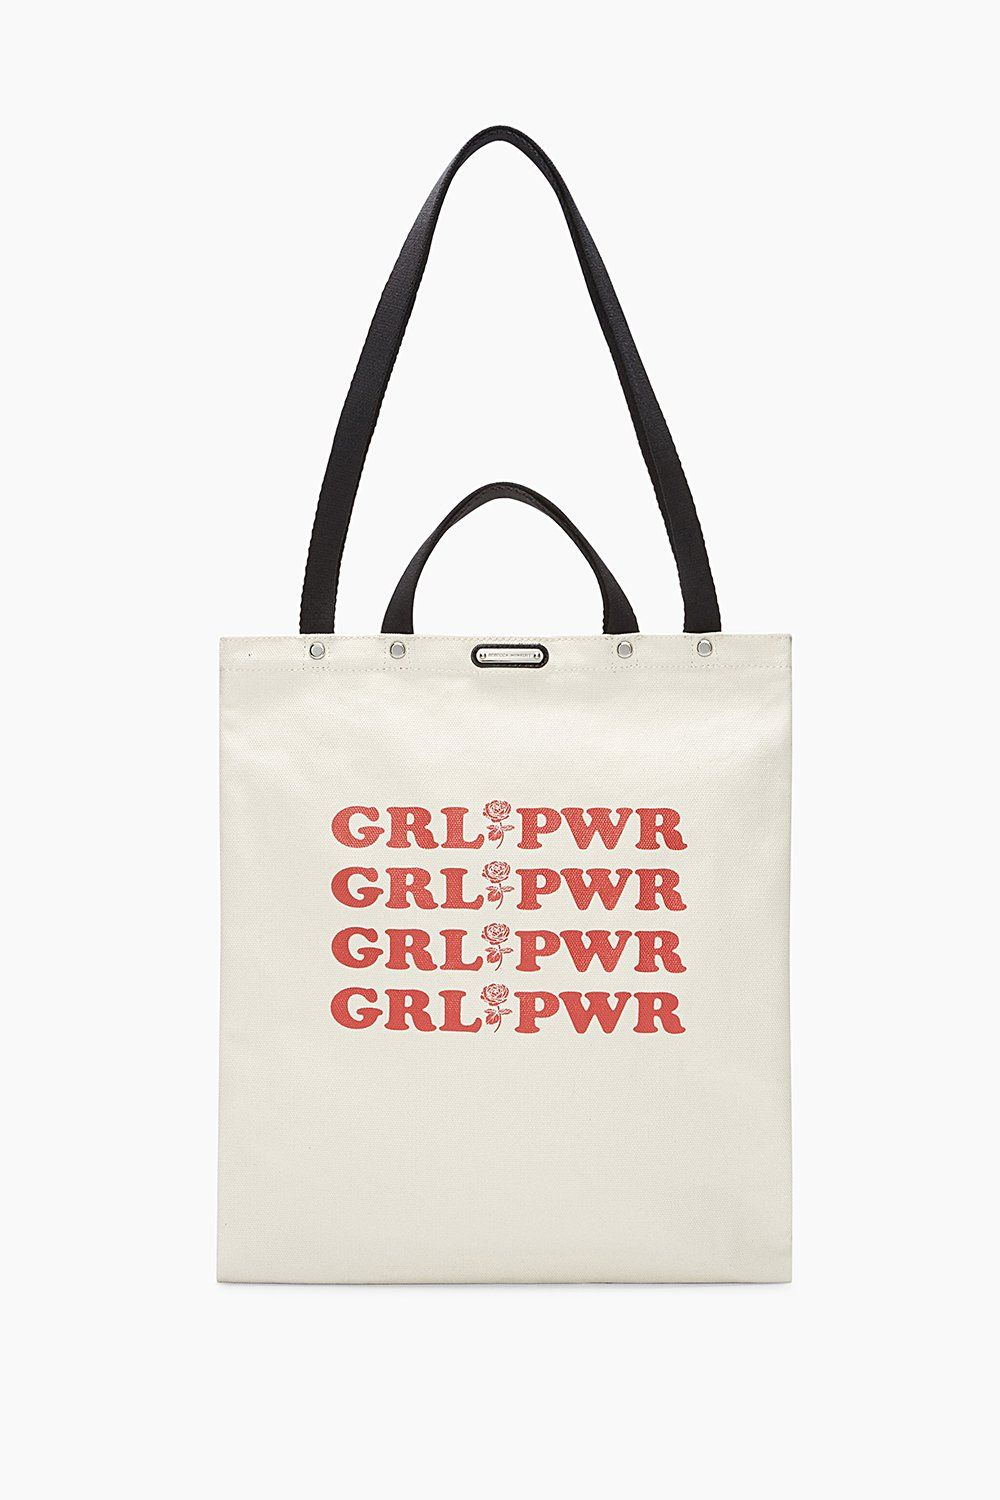 0d1a5d876a4f Large Tote - GRL PWR | Rebecca Minkoff, girl power, girl power tote bag,  feminist tote bag, feminism tote bag, feminist accessories, feminist bag